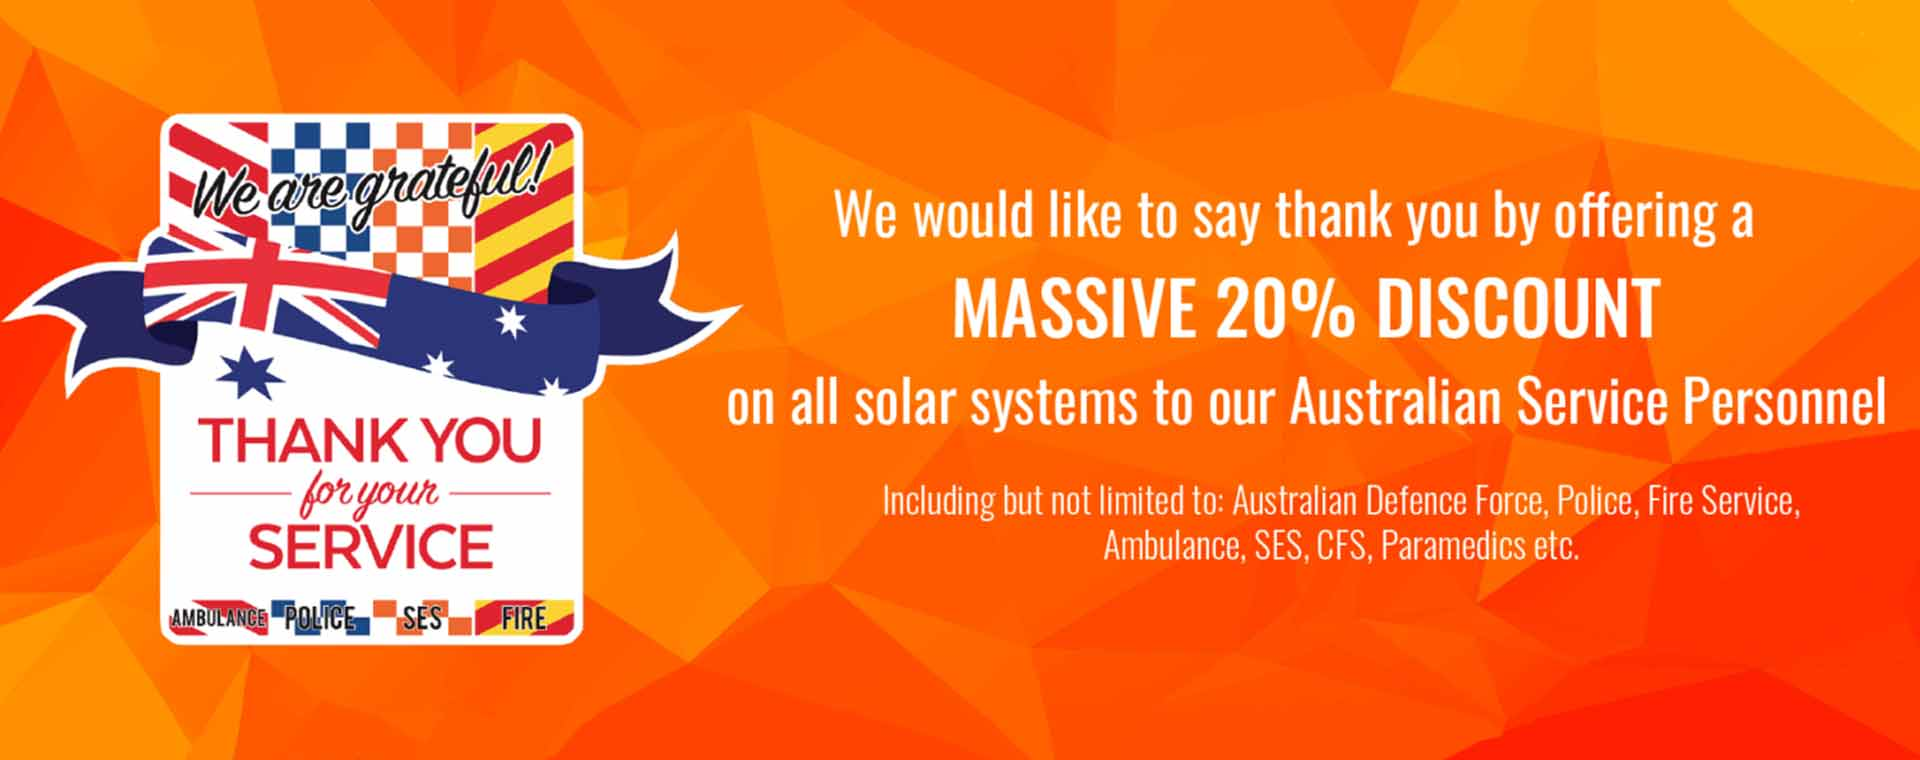 20% discount on solar systems to Australian Service Personnel